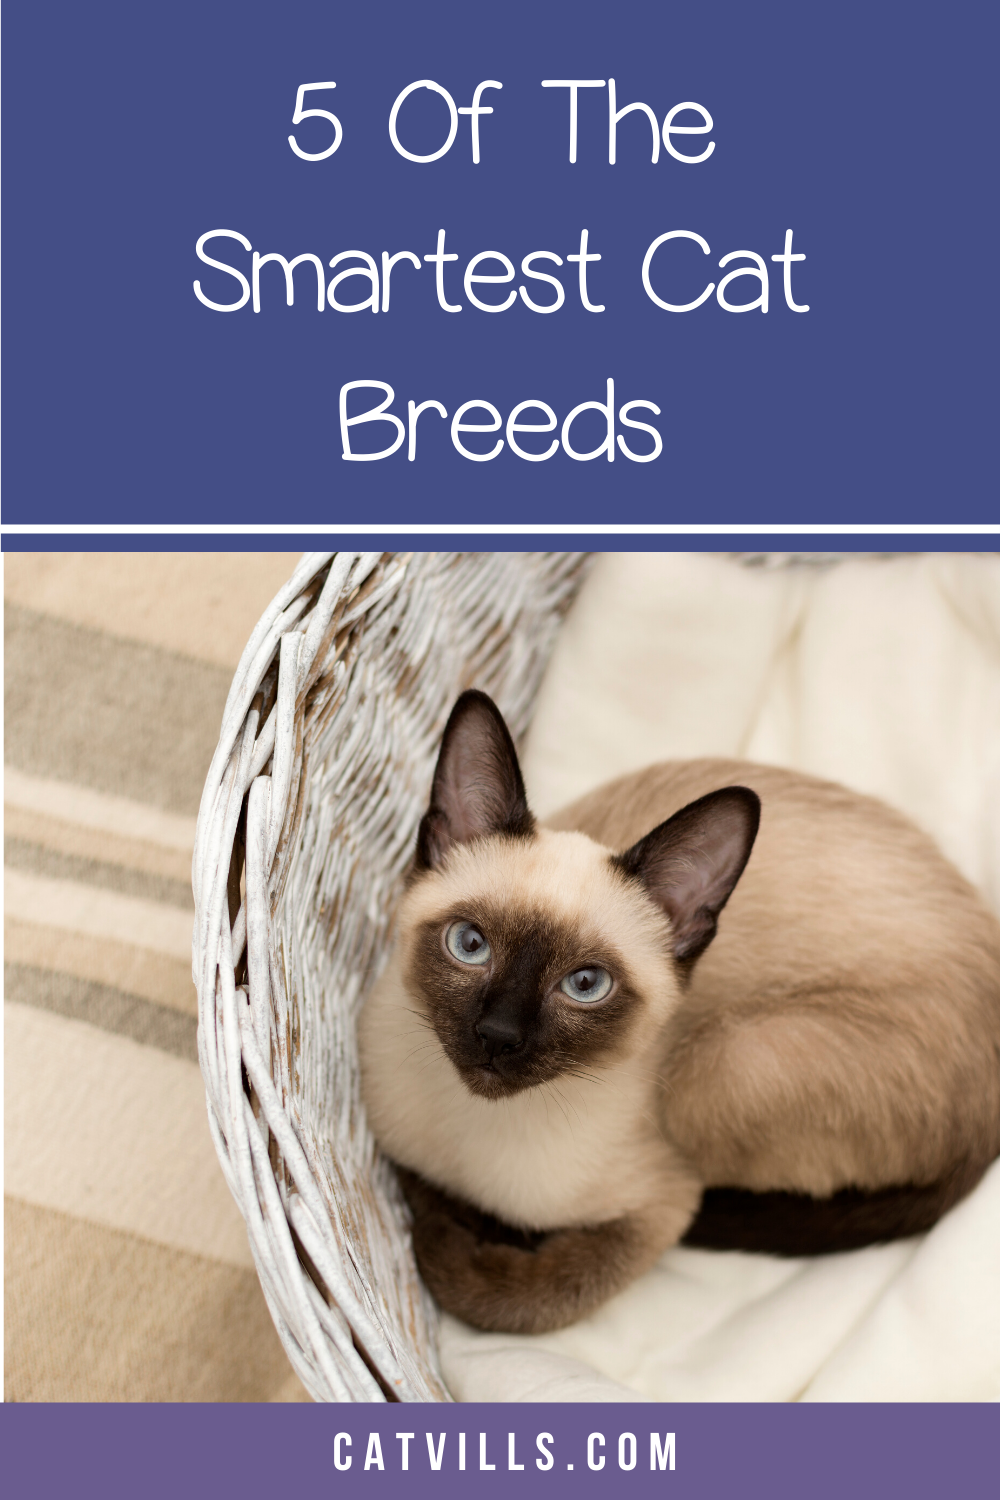 5 of the Most Intelligent Cat Breeds in the World